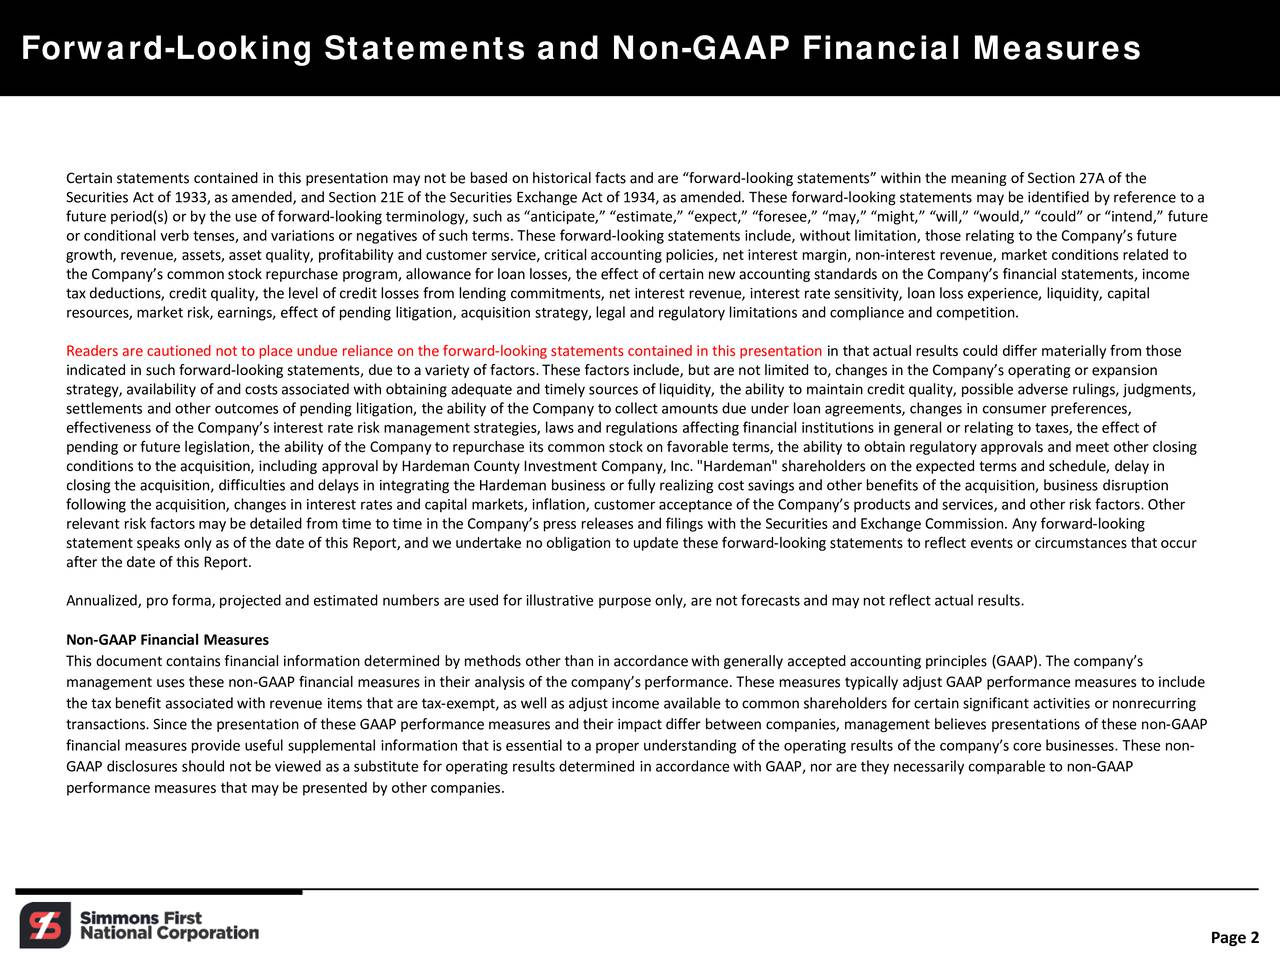 Certain statements contained in this presentation may not be based onhistorical factsand are forward-looking statements within the meaning of Section 27A of the Securities Act of 1933, as amended, and Section 21E of the Securities Exchange Act of 1934, as amended. These forwar-looking statements may be identified by reference to a future period(s) or by the use of forward-looking terminology, such asanticipate, estimate, expect, foresee, may, might, will, would, could or intend, future or conditional verb tenses, and variations or negatives of such terms. These forward-looking statements include, without limitation, those relating to the Companys future growth, revenue, assets, asset quality, profitability and customer service, critical accounting policies, net interes, non-interest revenue, market conditions related to the Companys common stock repurchase program, allowance for loan losses, the effect of certain new accounting standards onh te Companys financial statements, income taxdeductions, credit quality, the level ofcredit losses from lending commitments, net interest revenue, interest rate sensitivity, loan loss experience, liquidity, capital resources, market risk, earnings, effect of pending litigation, acquisition strategy, legal and regulatory limitations and compliance and competition. Readers are cautioned not to place undue reliance on the forward-looking statements contained in this presentationin that actual results could differ materially from those indicated in such forward-looking statements, due to a variety of factors.These factorsinclude, but are not limited to, changes in the Companys operating or expansion strategy, availability of and costsassociated with obtaining adequate and timely sources of liquidity, the ability to in credit quality, possible adverse rulings, judgments, settlements and other outcomes of pending litigation, the ability of the Company to collect amounts due under loan agreement,schanges in consumer preferences, effecti